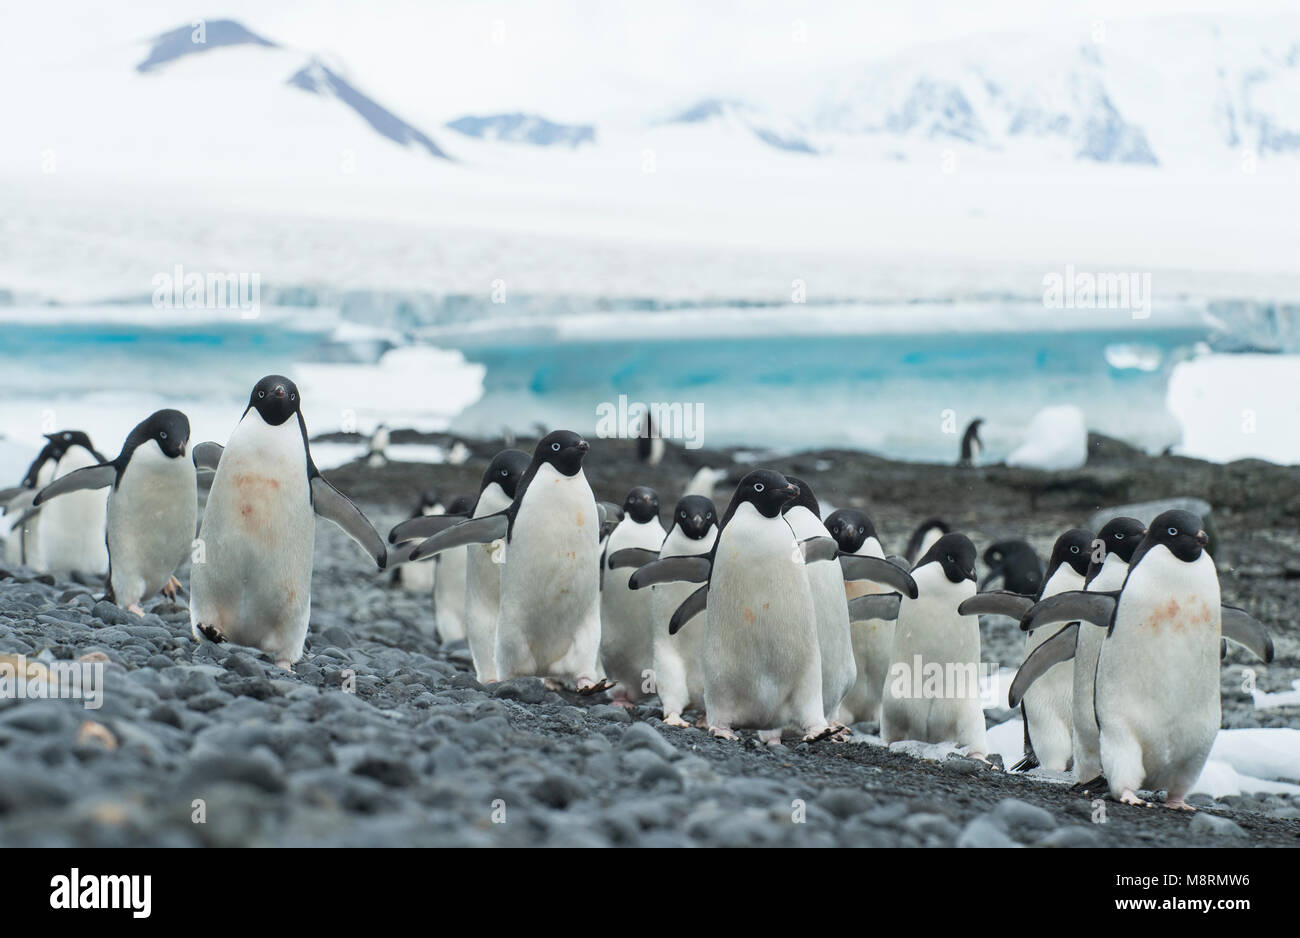 Groups of Adelie penguins walk along the shoreline at Brown Bluff, Antarctica. - Stock Image